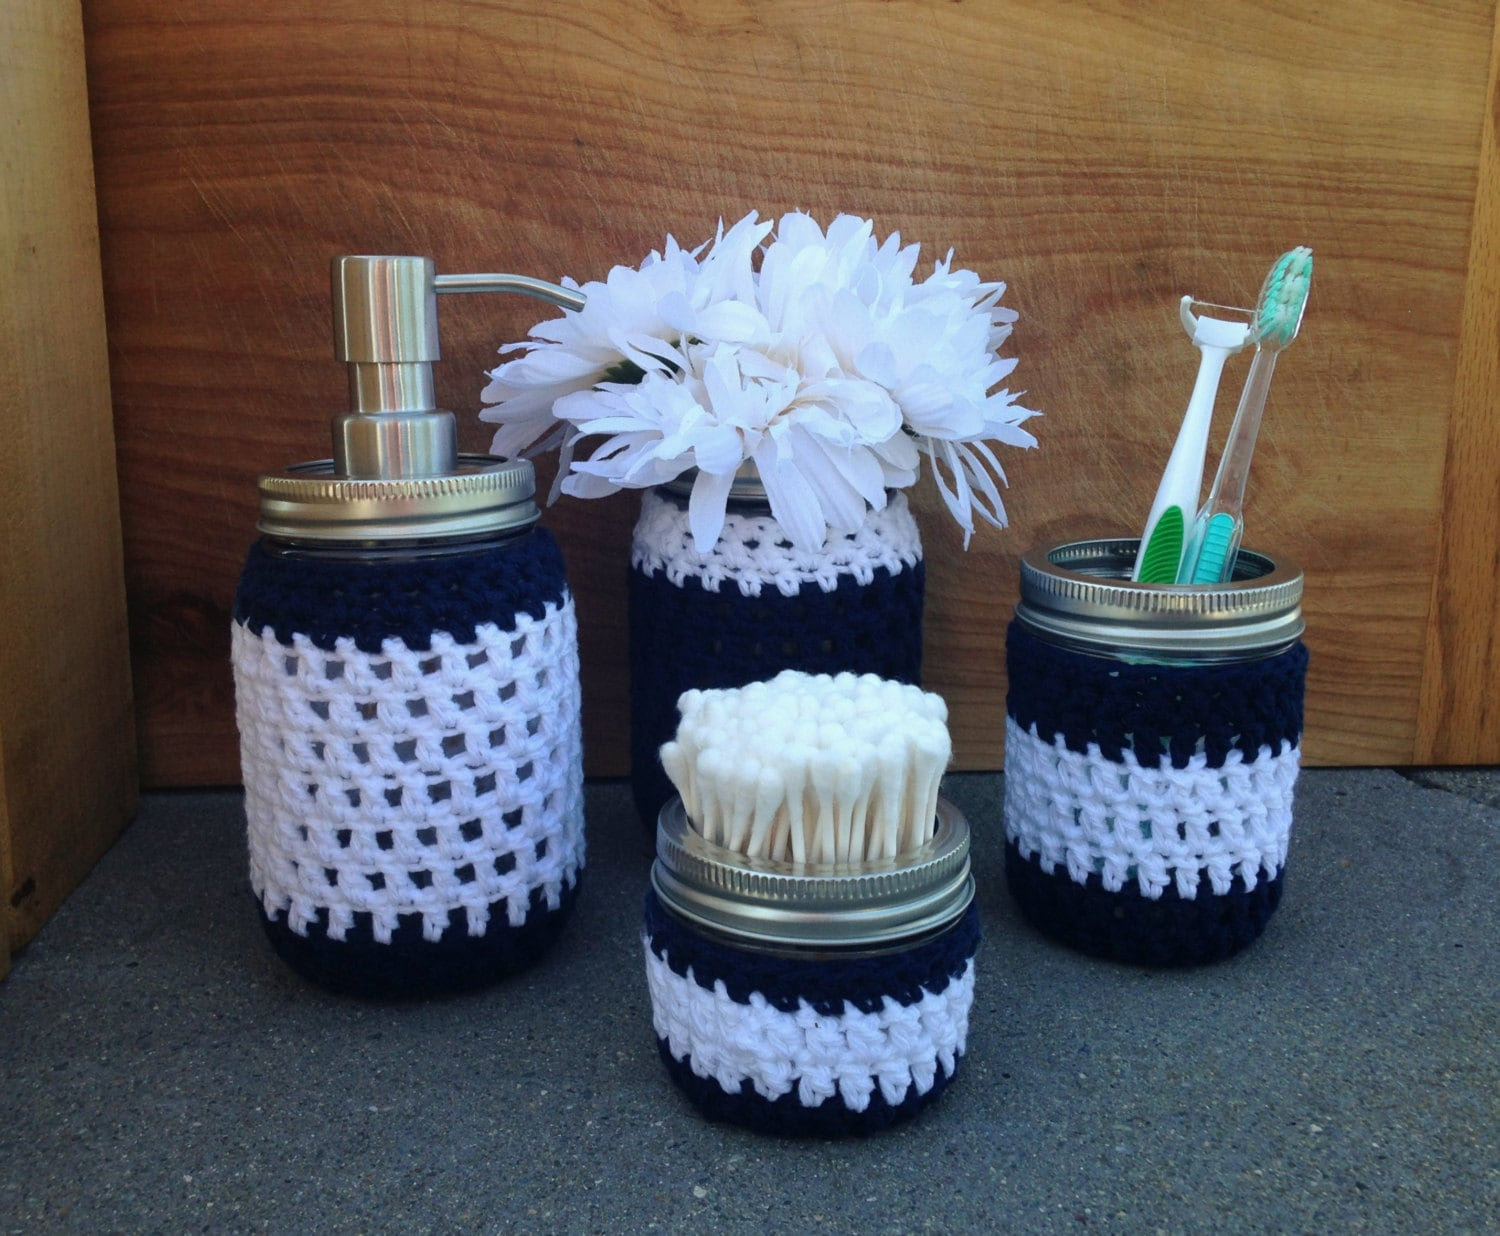 Mason jar bathroom set navy blue and white decor 4 pieces for Navy and white bathroom accessories